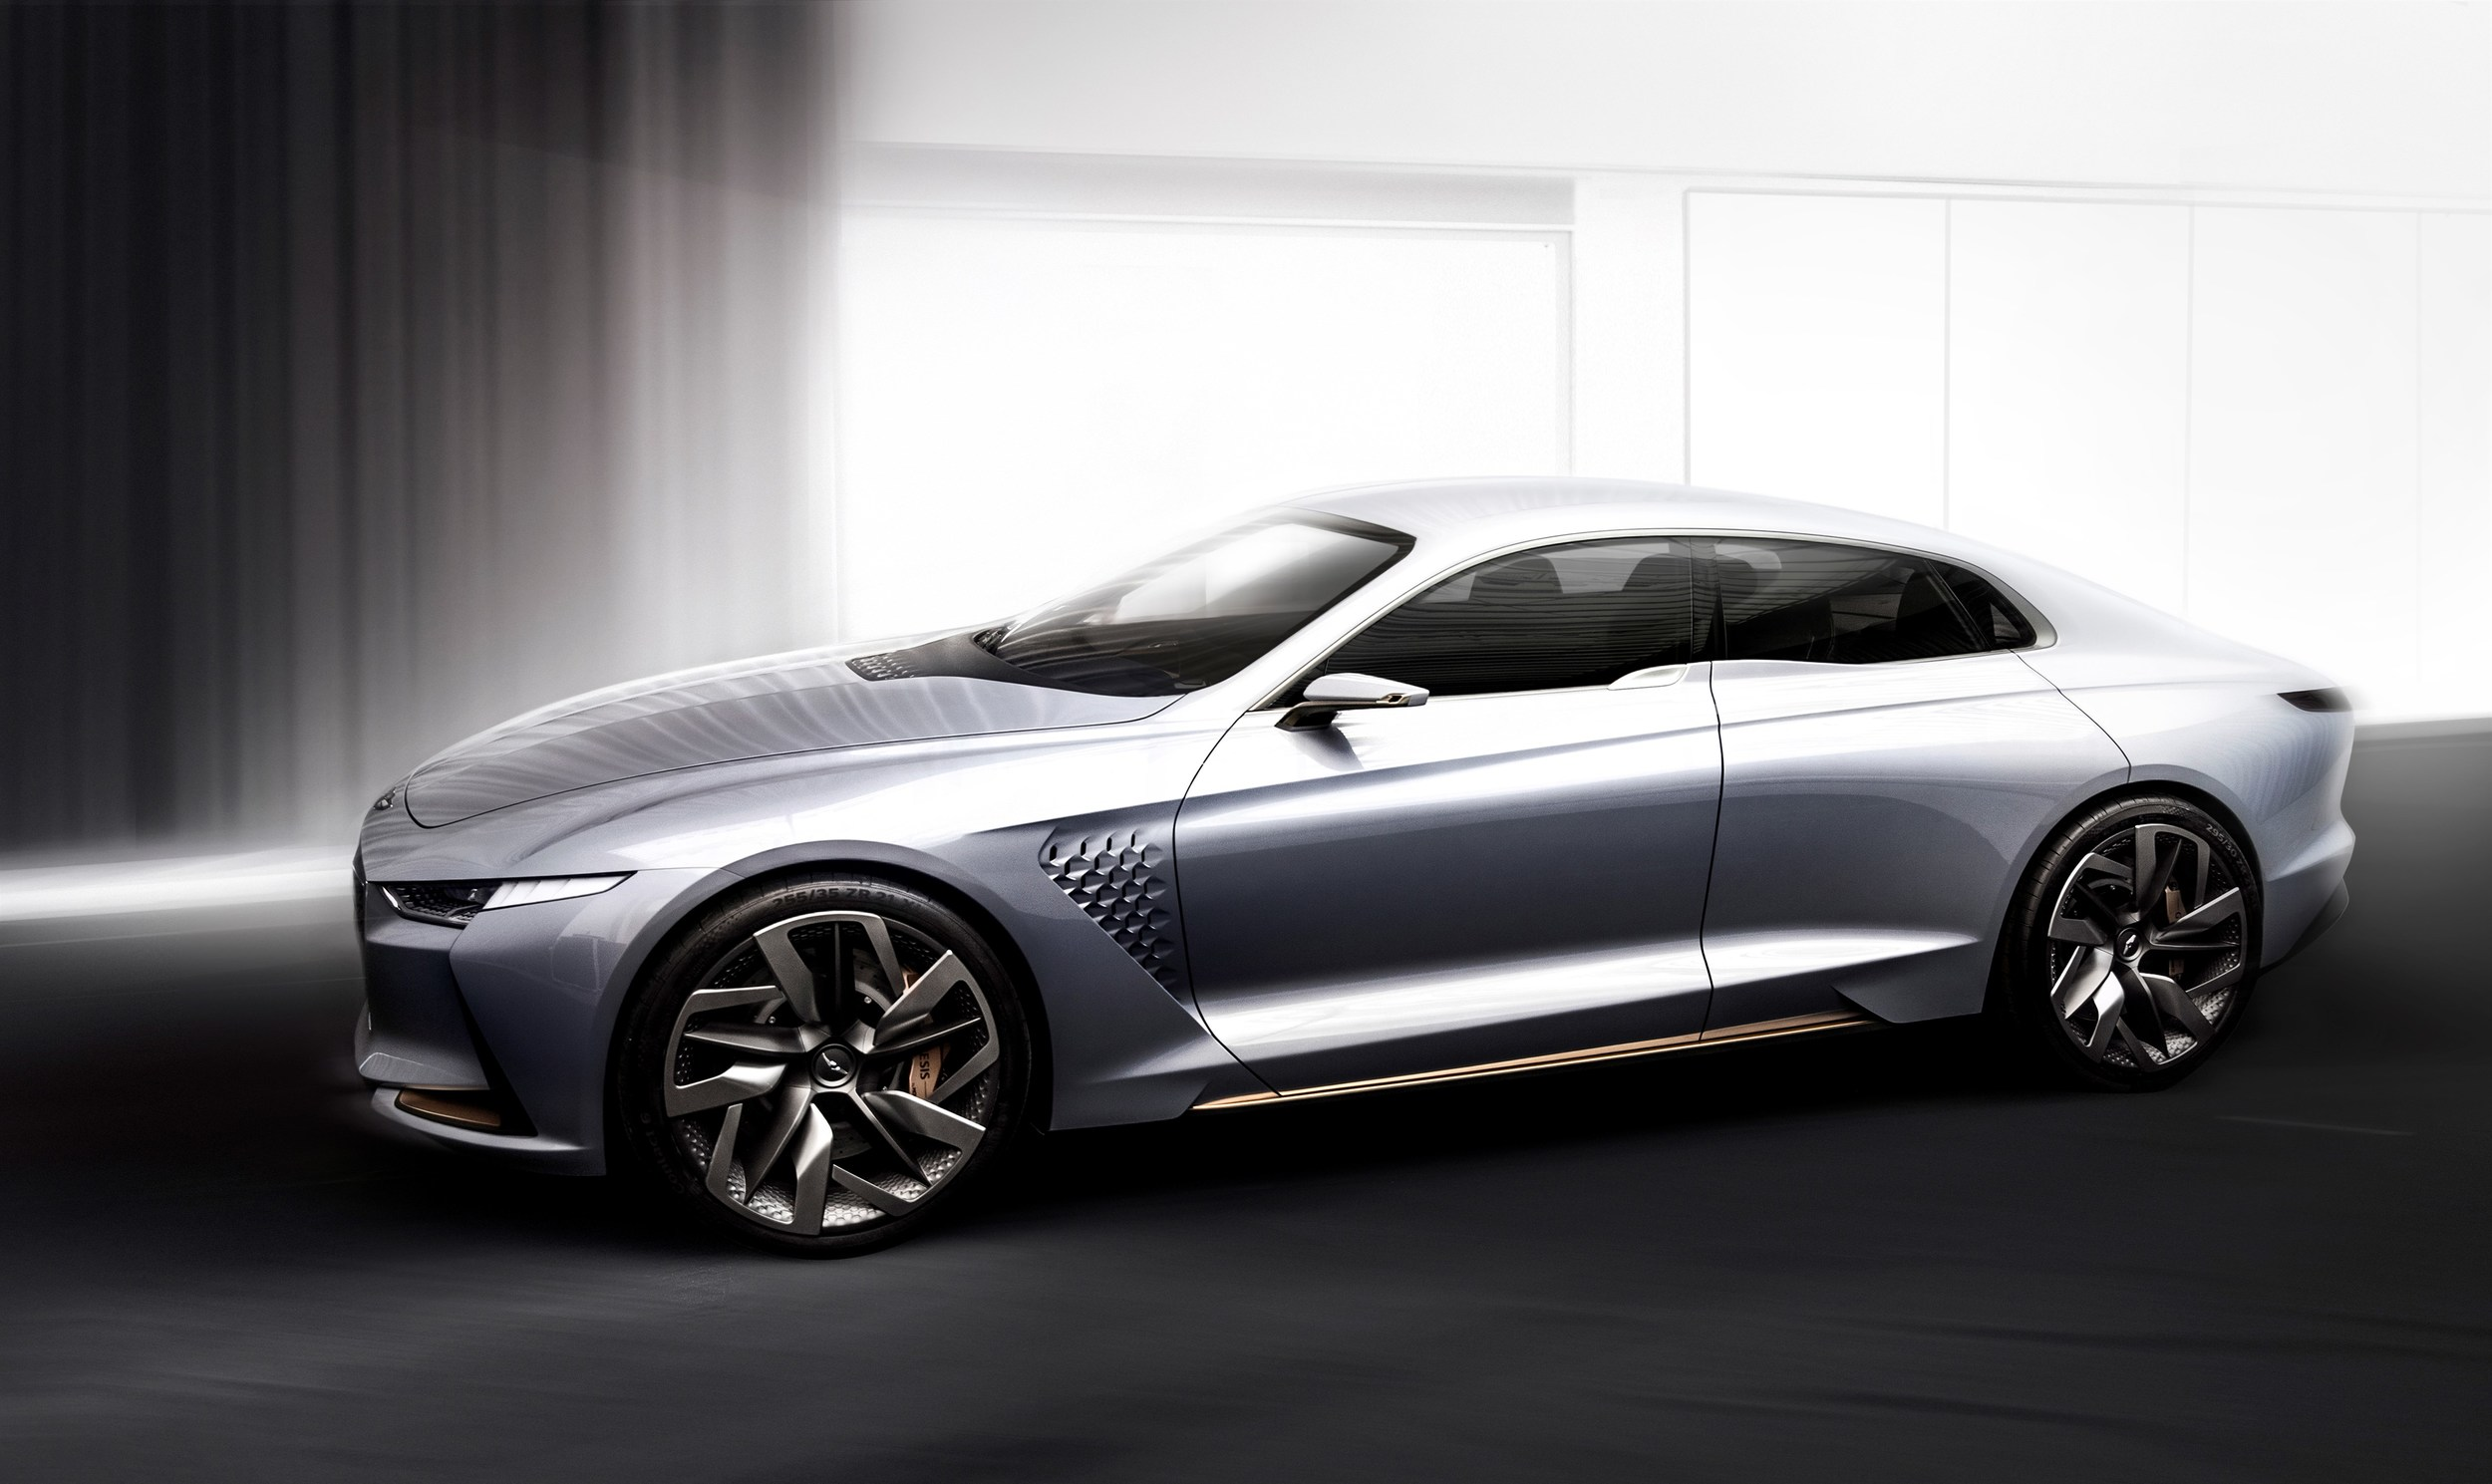 genesis new york concept preview for the 2018 genesis g70